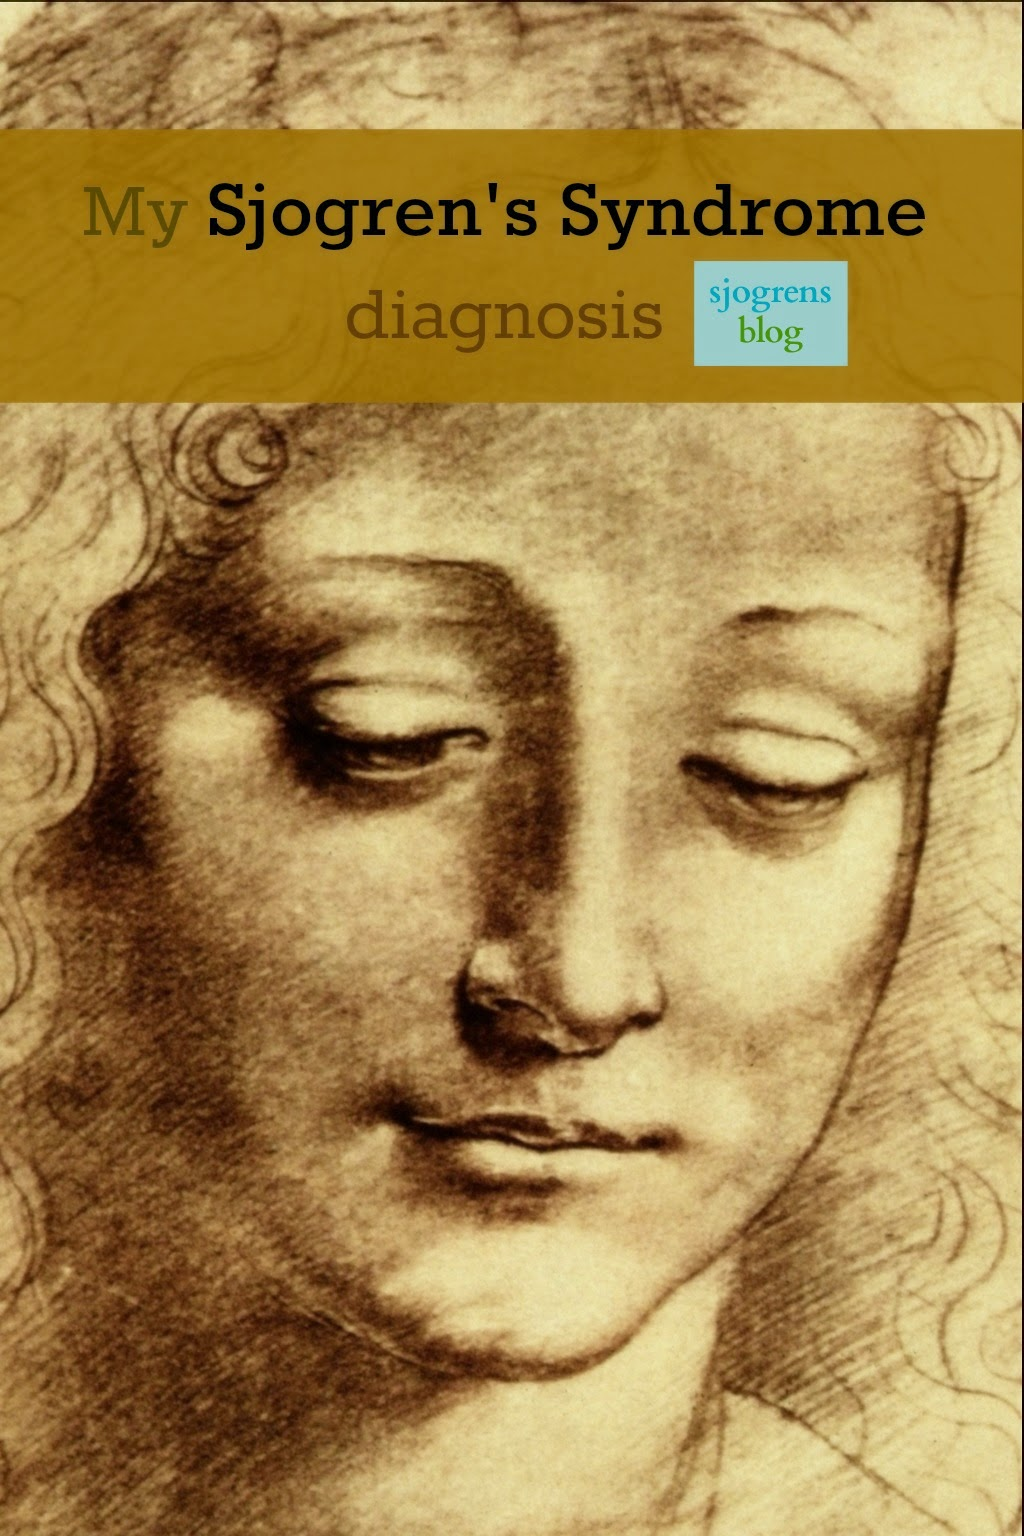 personal stories of diagnosis of Sjogren's Syndrome